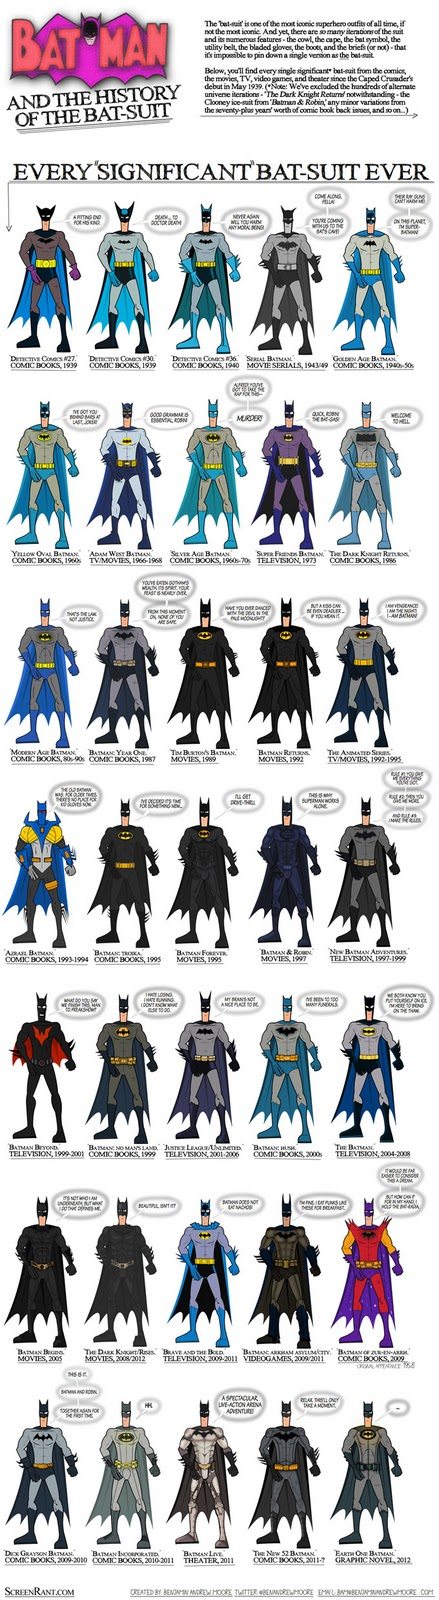 Todos os uniformes do Batman